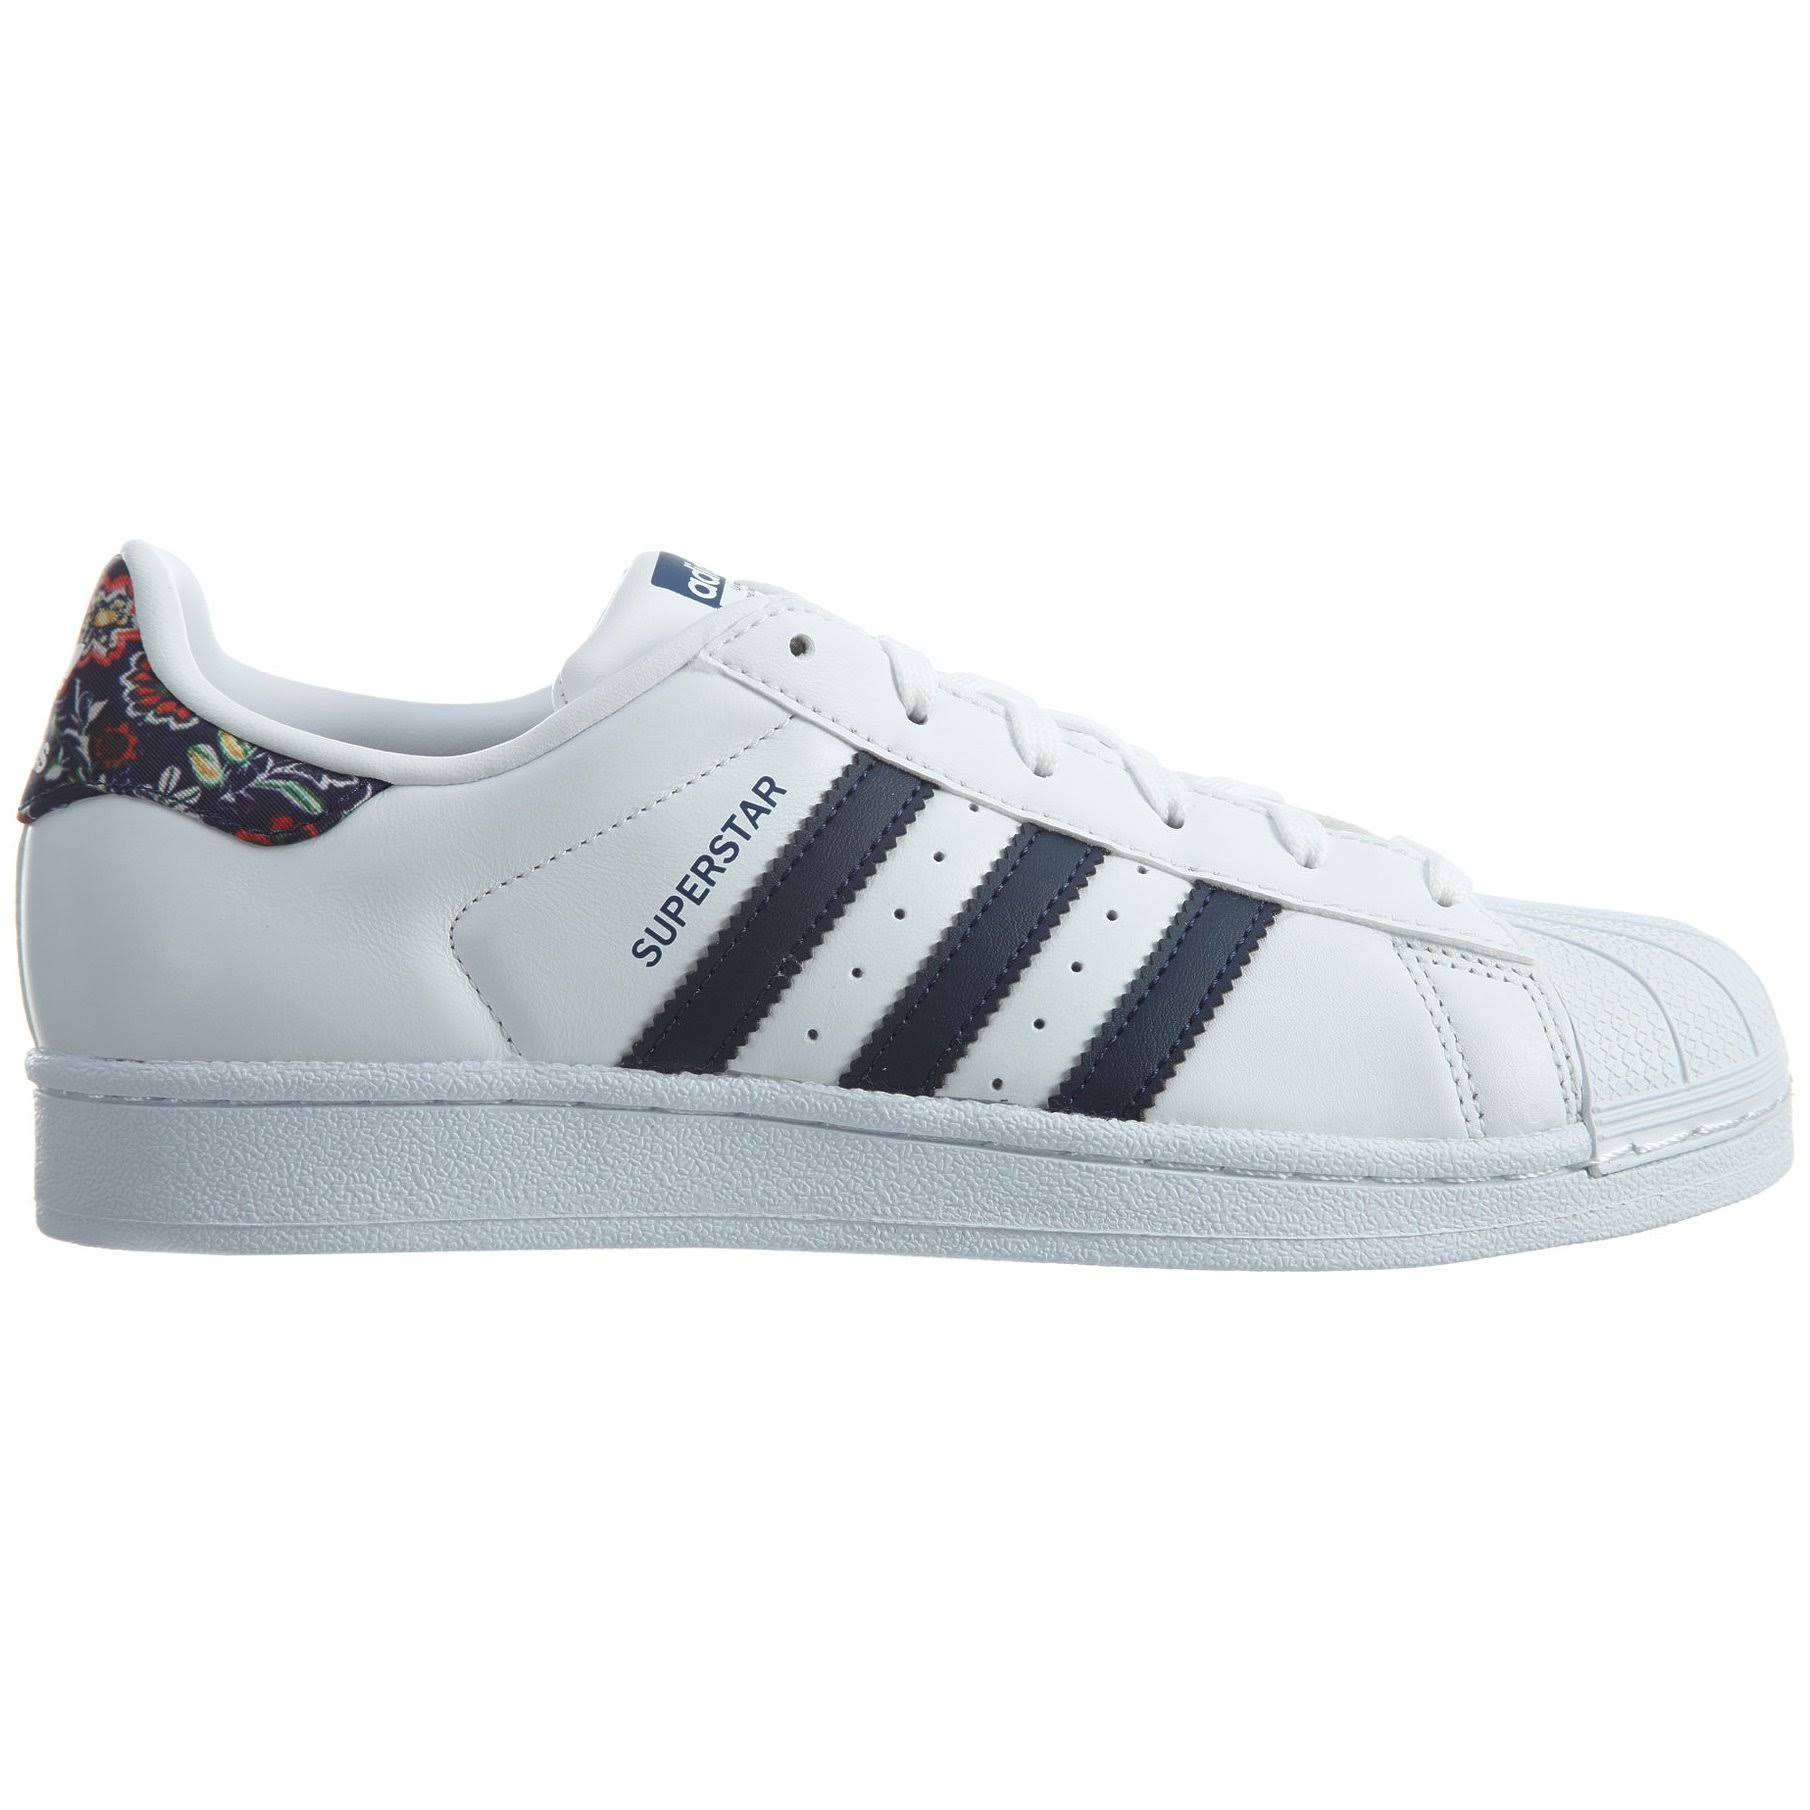 Womens Adidas Superstar Womens StyleS80481 Adidas Superstar 354LcAqRj